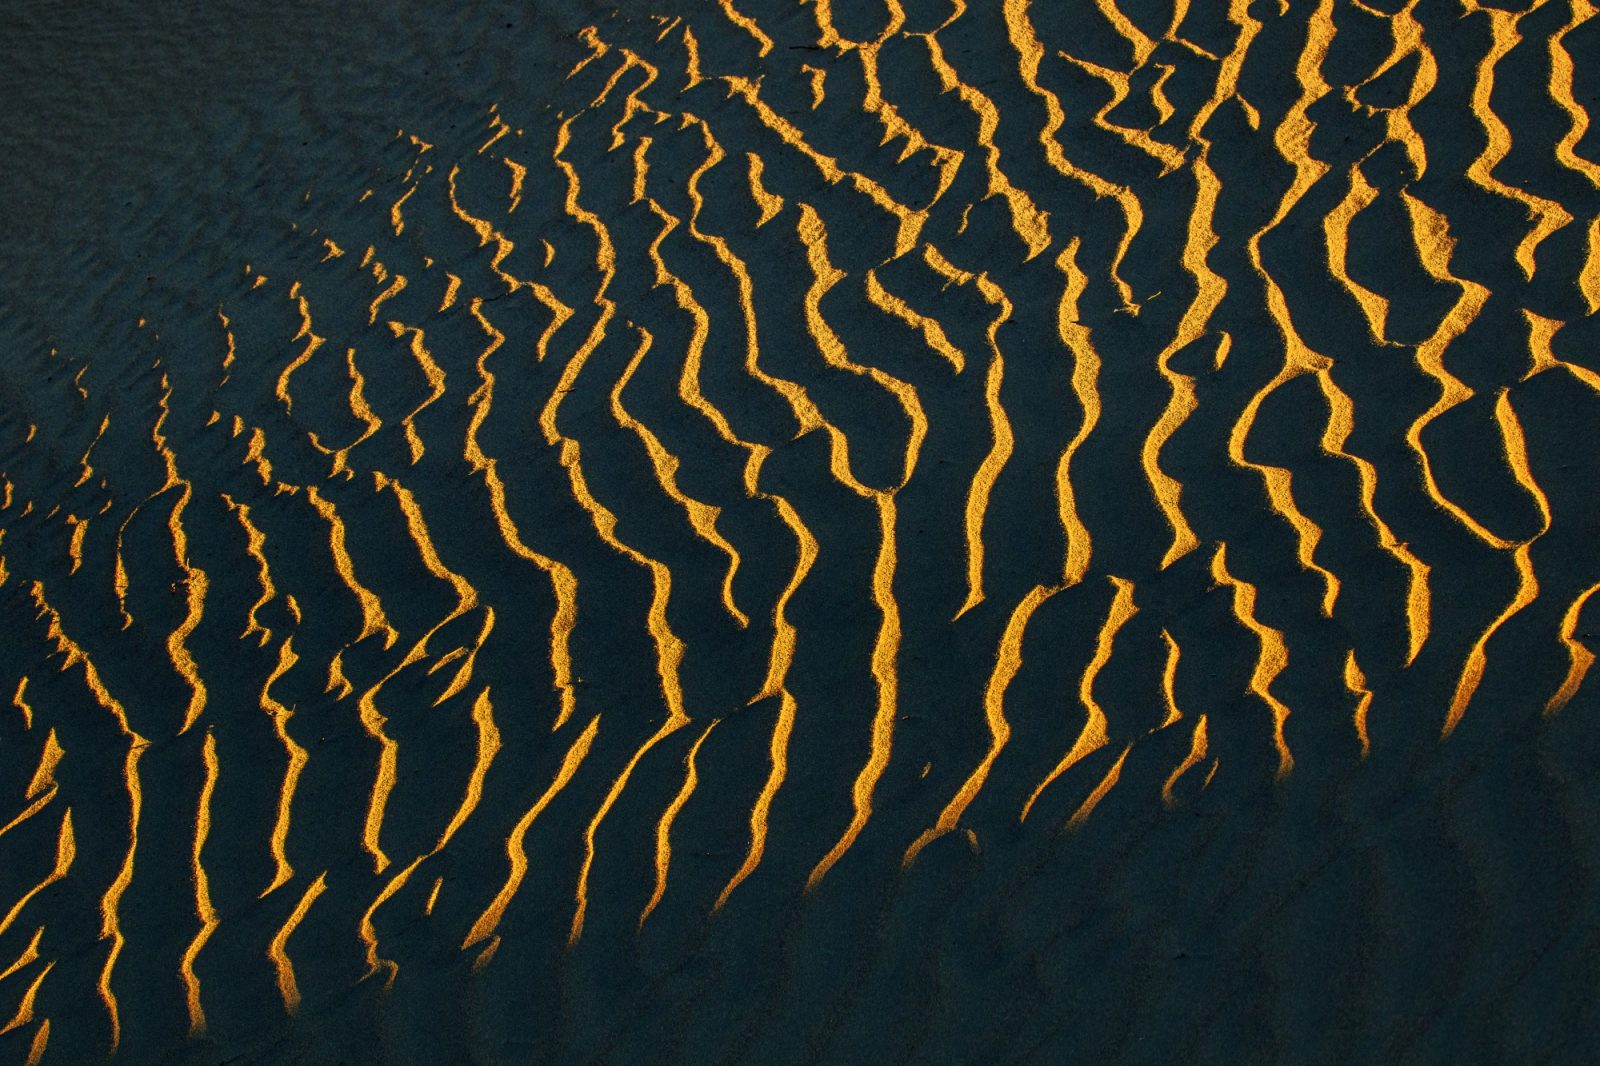 Light in the shape of a wave